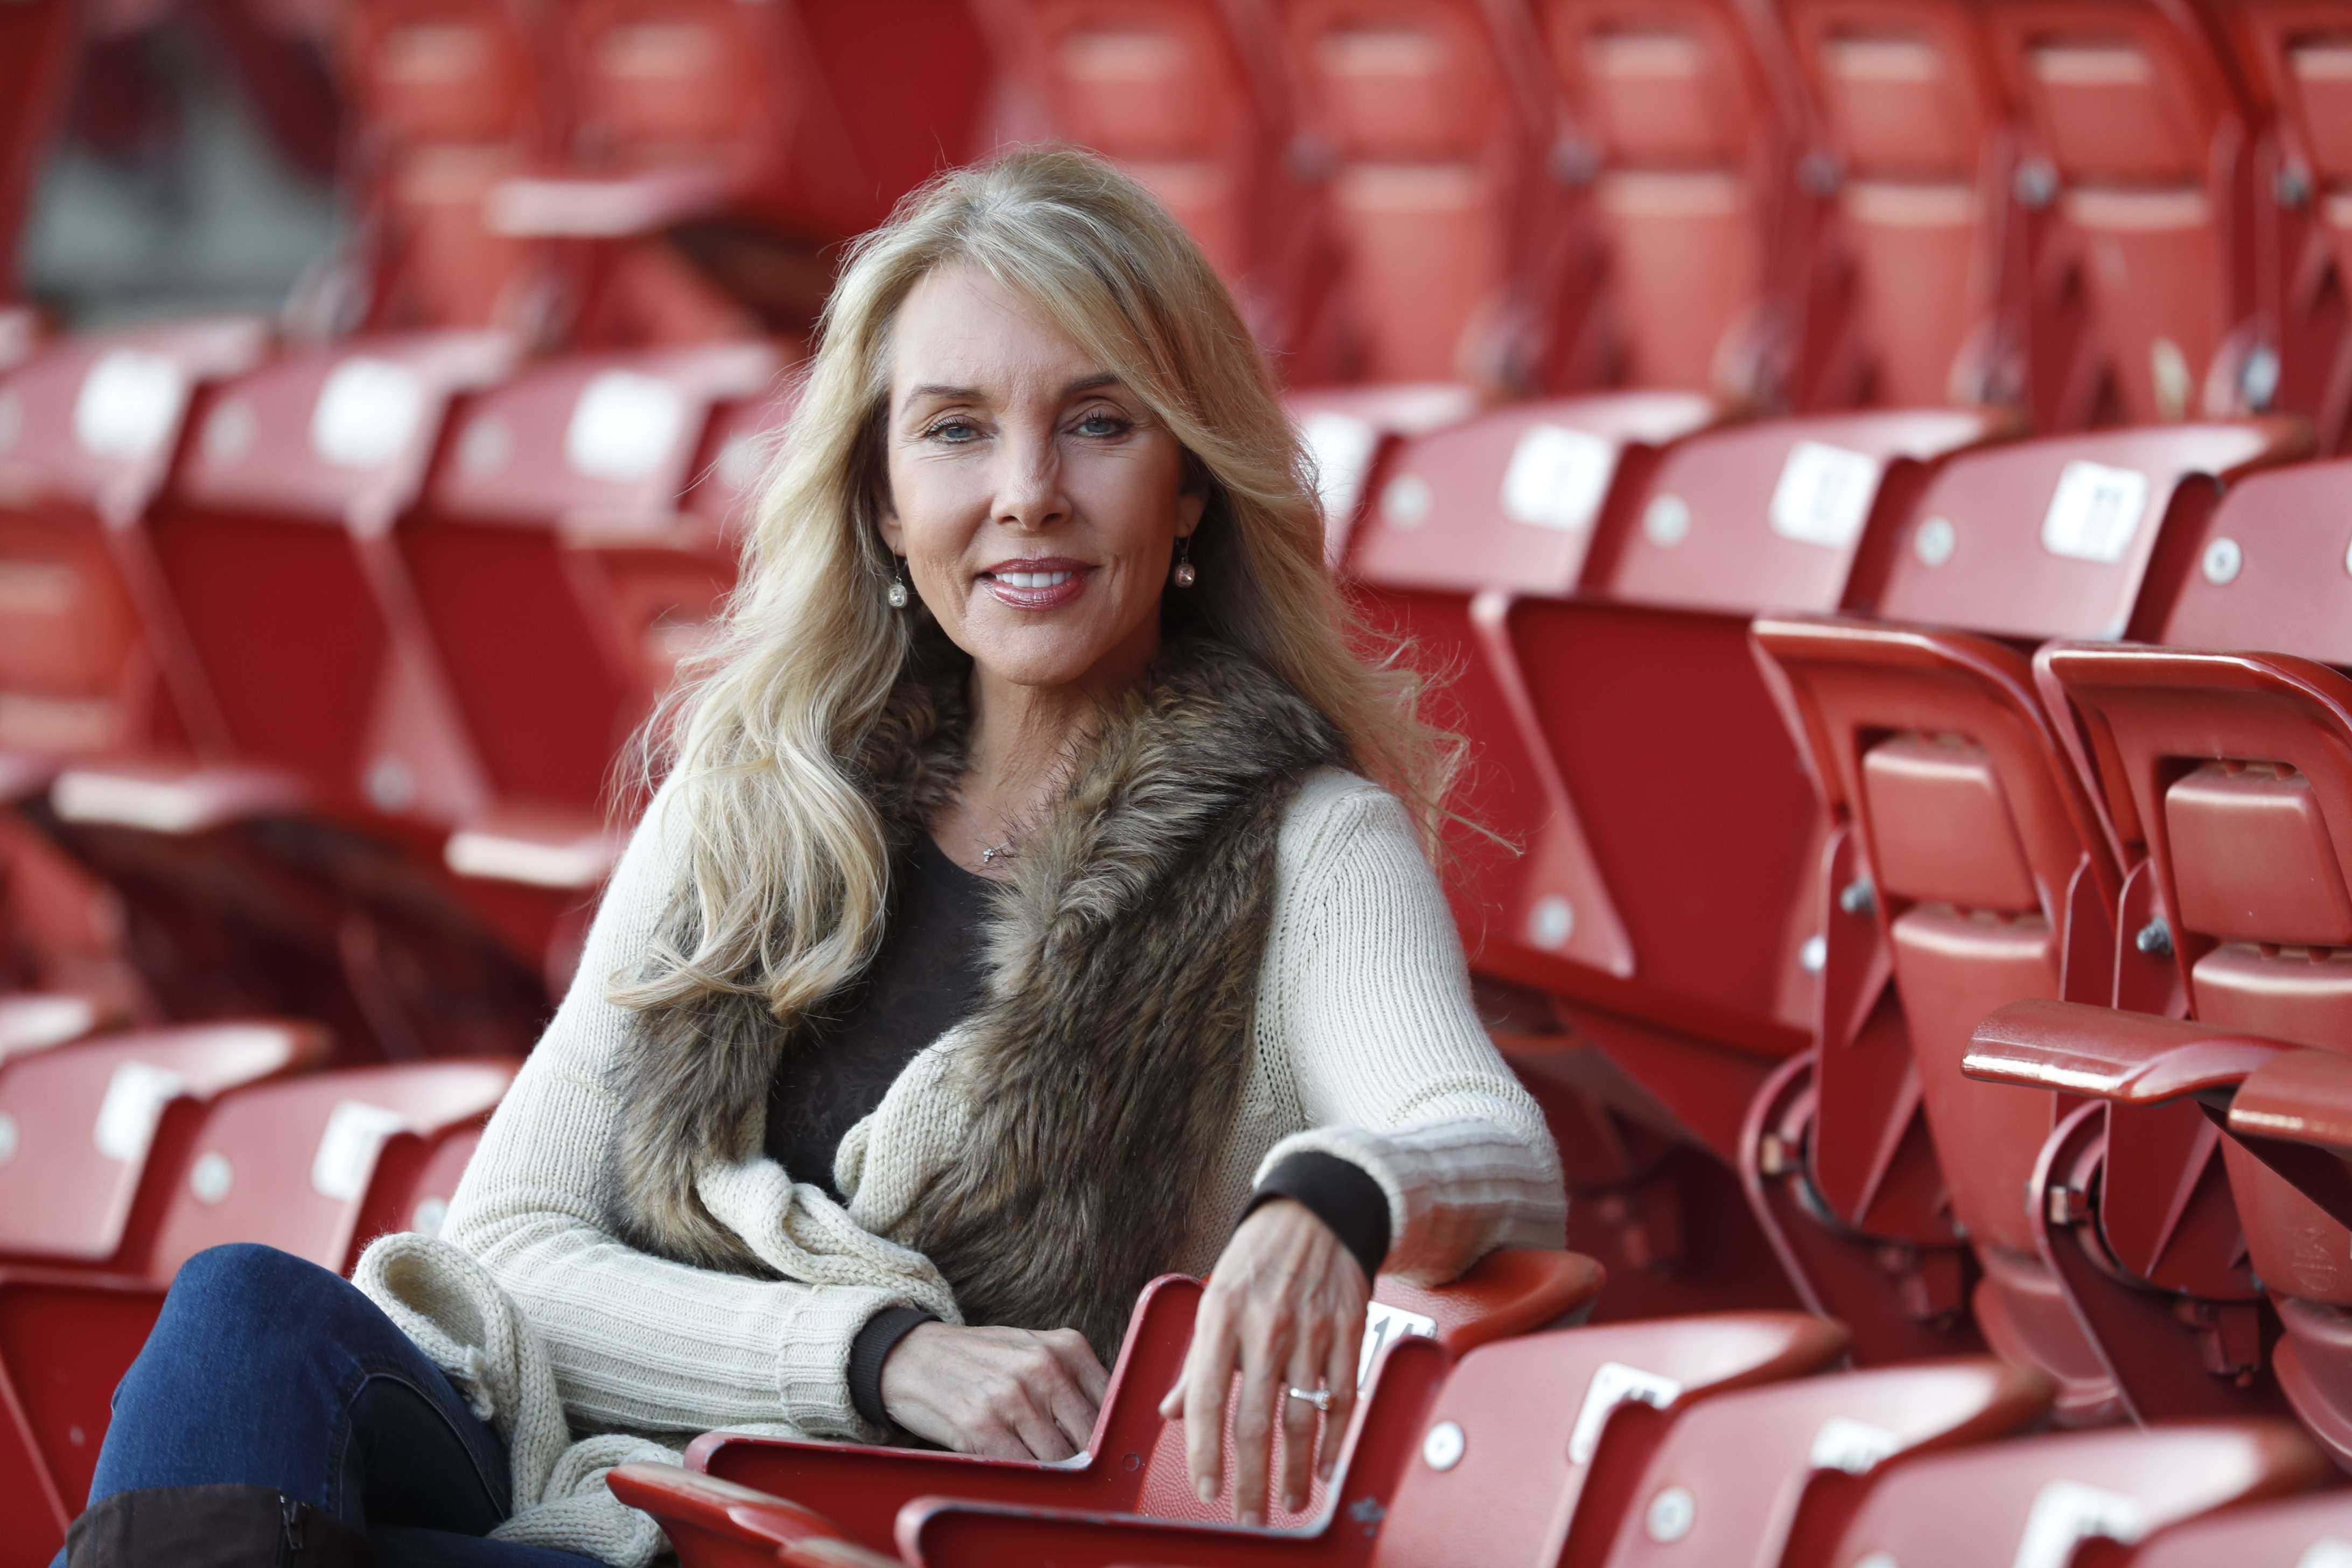 Gari Meacham, photographed in the Coca-Cola Field stands, confidently shares some of the vulnerable moments of her life as a baseball wife. She is married to Bisons manager Bobby Meacham. (Harry Scull Jr./Buffalo News)